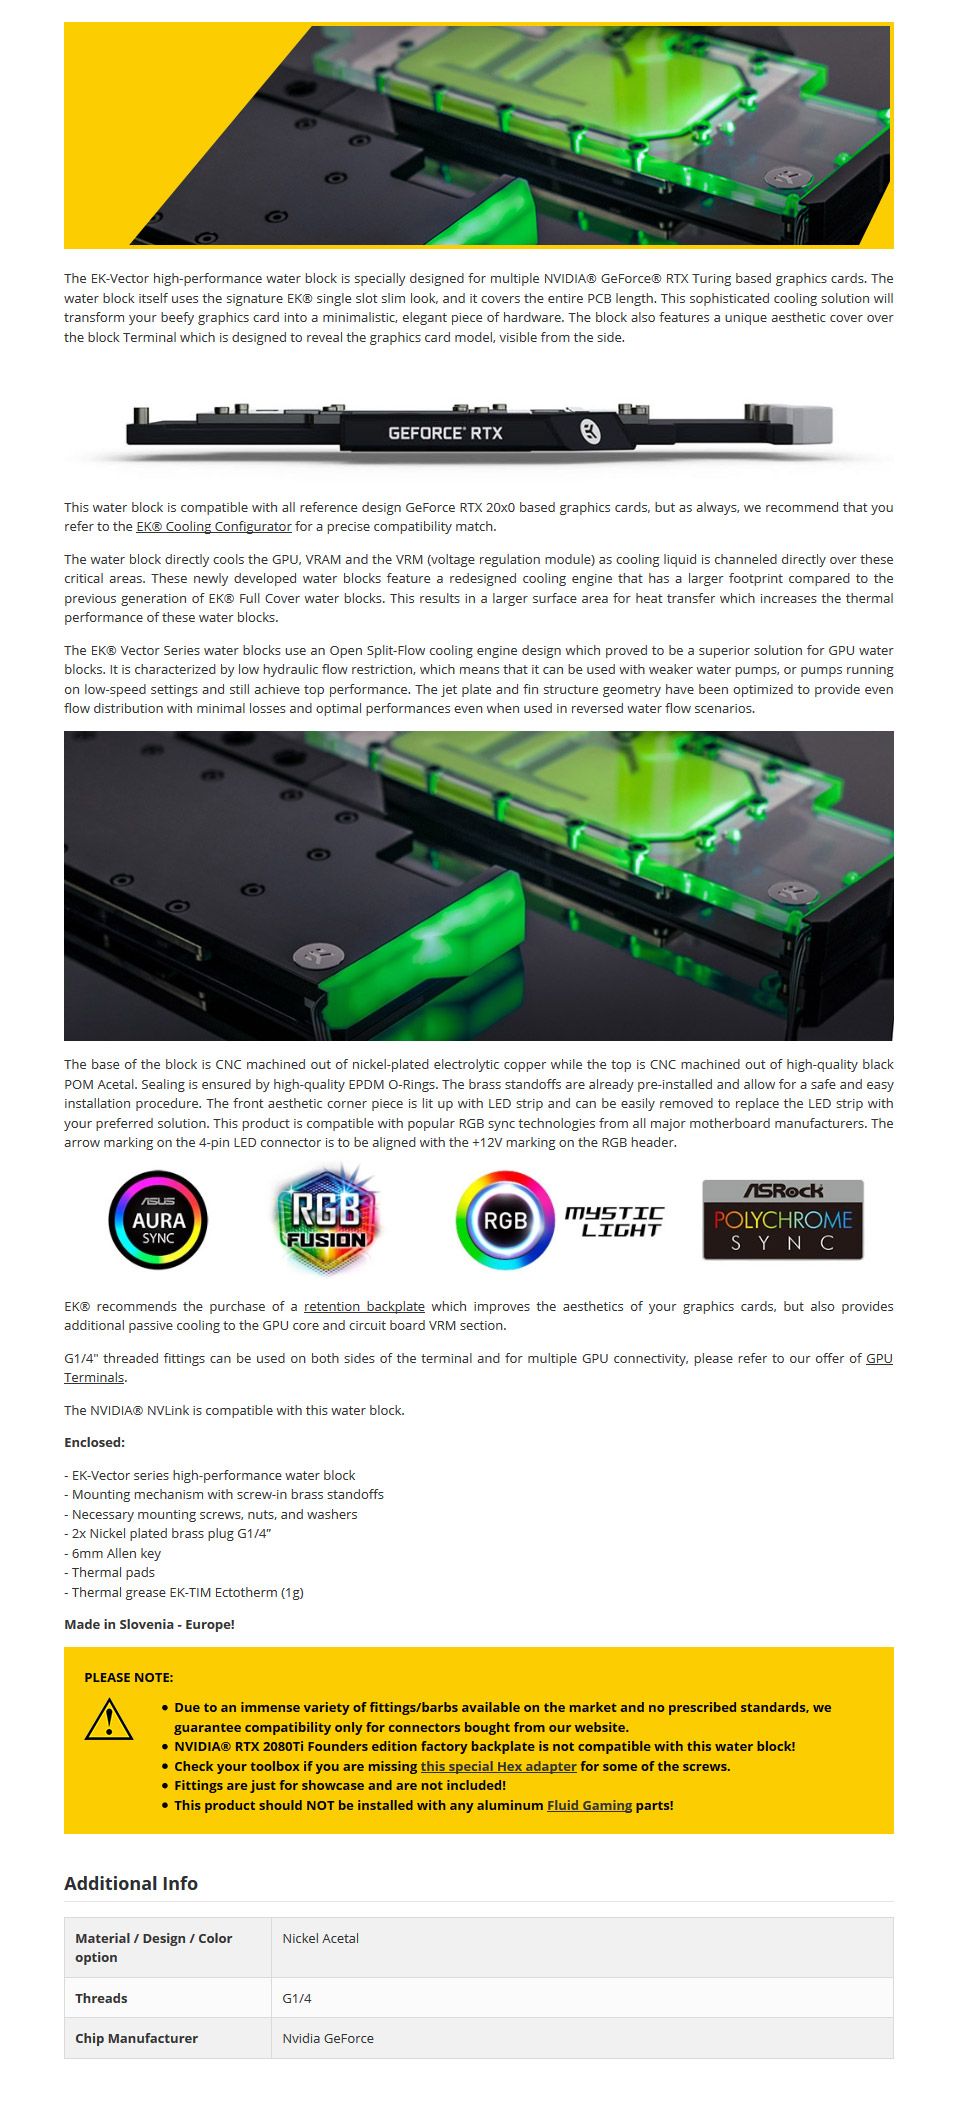 Ek Vector Rtx 2080 Ti Rgb Gpu Waterblock Nickel Acetal Circuit Board Picture Frames Pcb Printed Boards Pinterest The Entire Length This Sophisticated Cooling Solution Will Transform Your Beefy Graphics Card Into A Minimalistic Elegant Piece Of Hardware